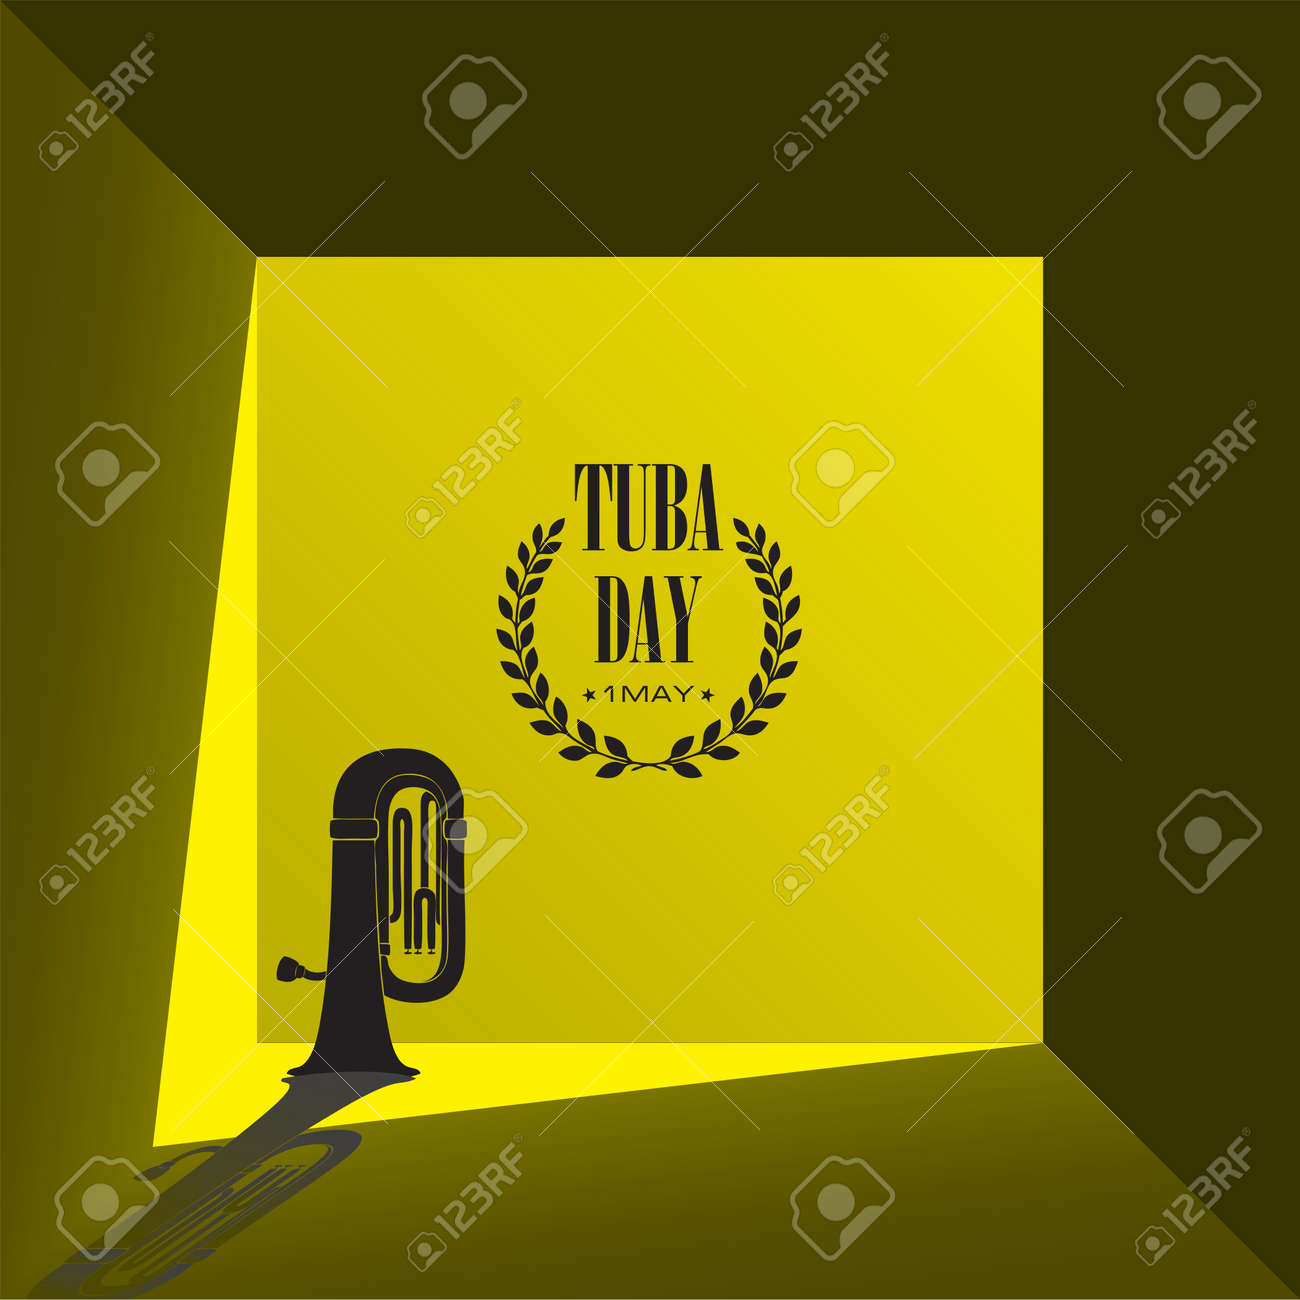 Illustration for design works of the May holiday - Tuba Day - 169441828